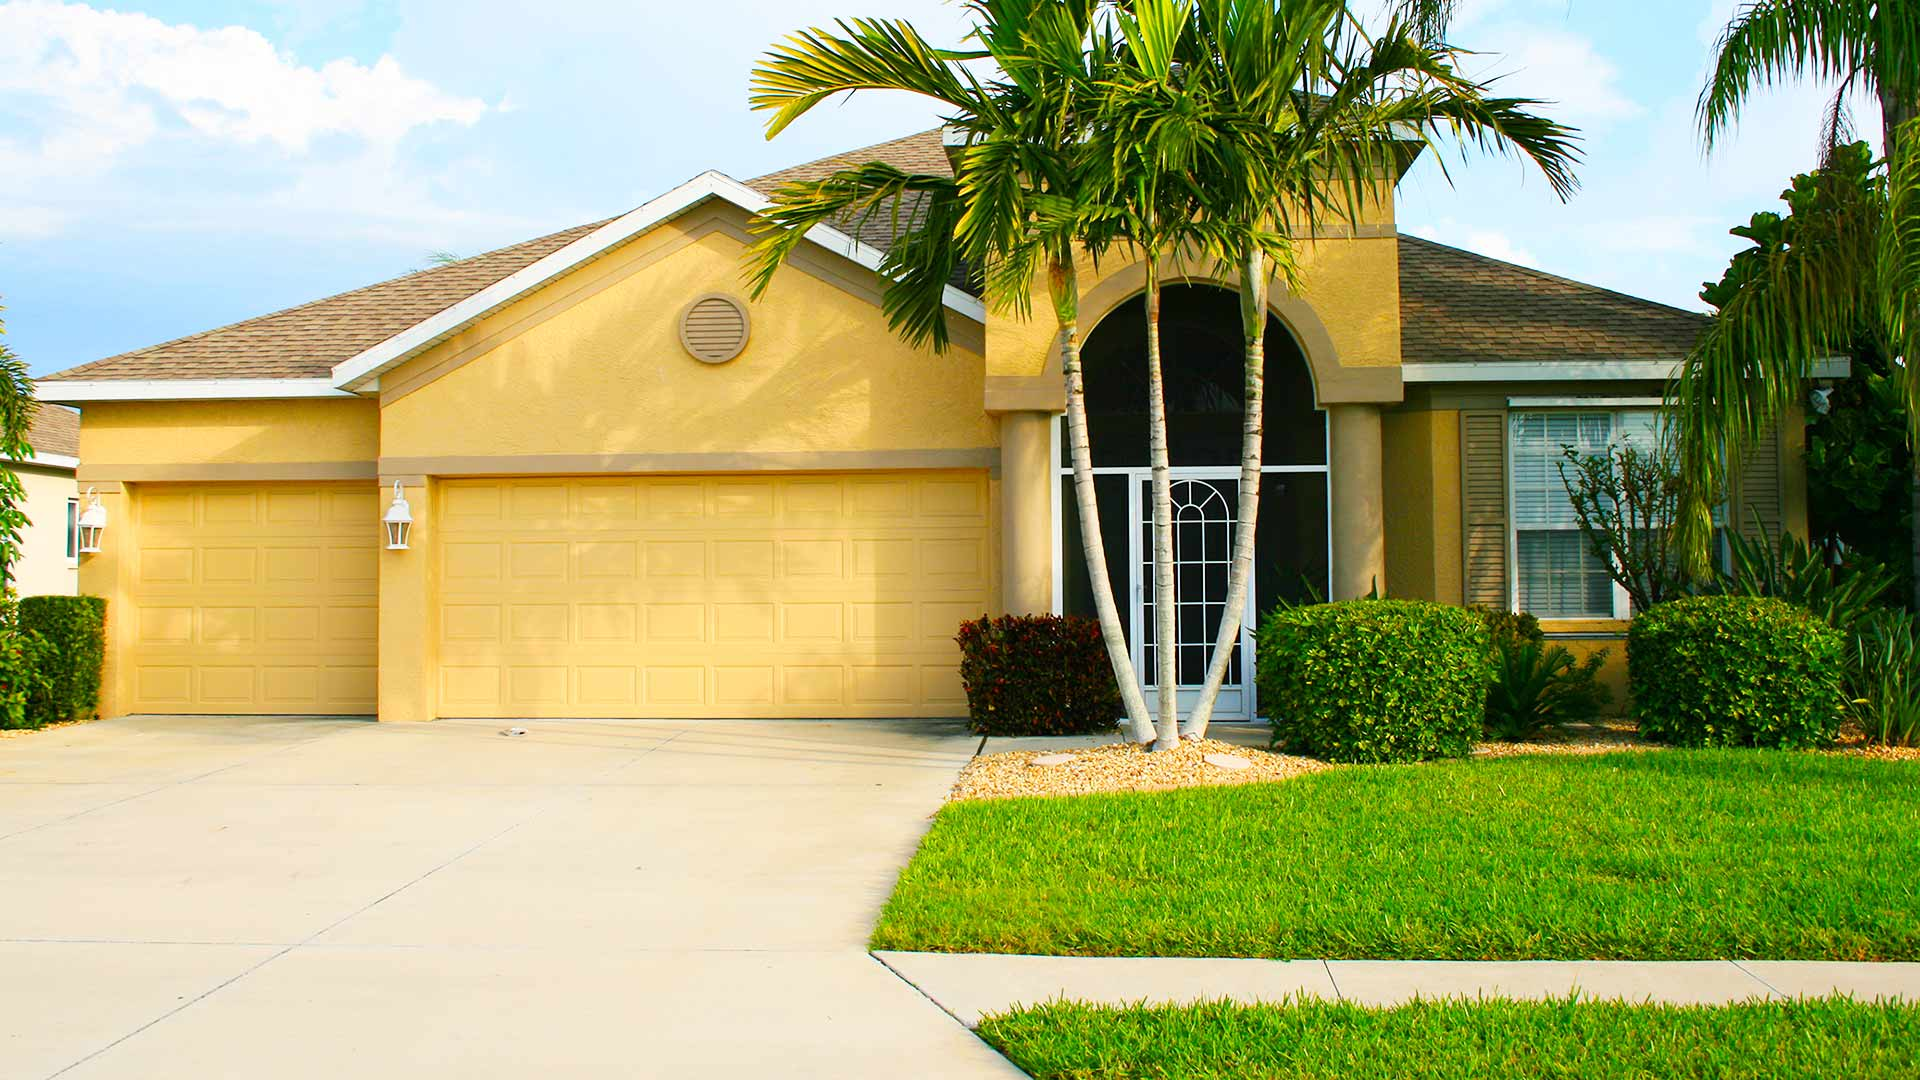 Lakeland, FL home with professionally manicured landscape by ProCare Lawn Maintenance.